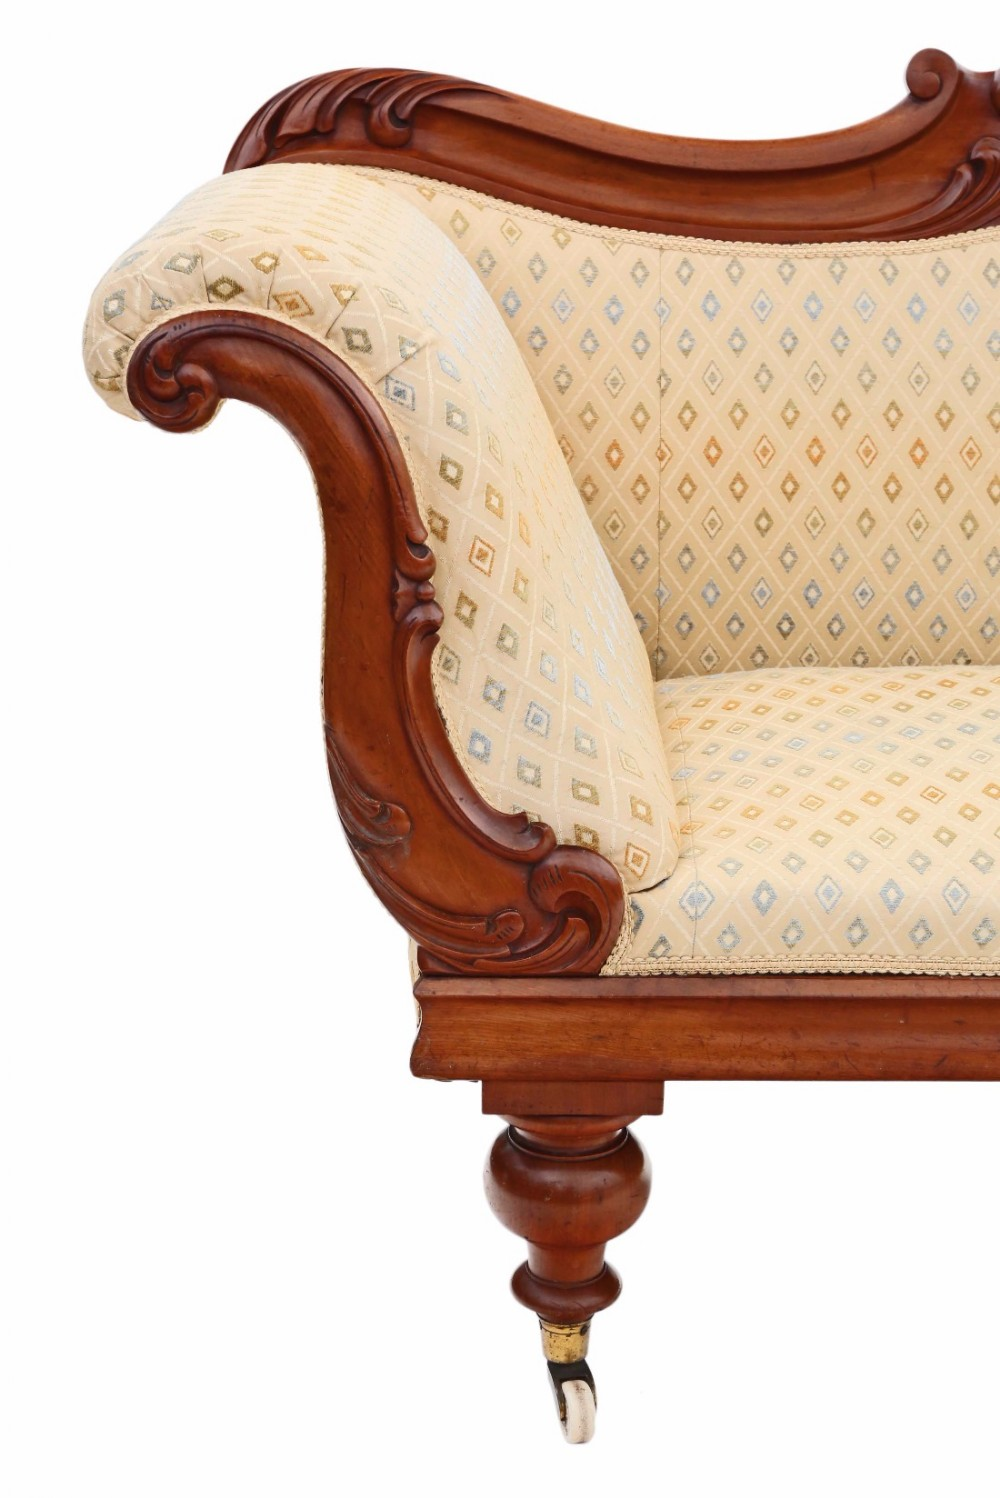 William iv scroll arm sofa chaise longue mahogany 452121 for Antique chaise longue uk